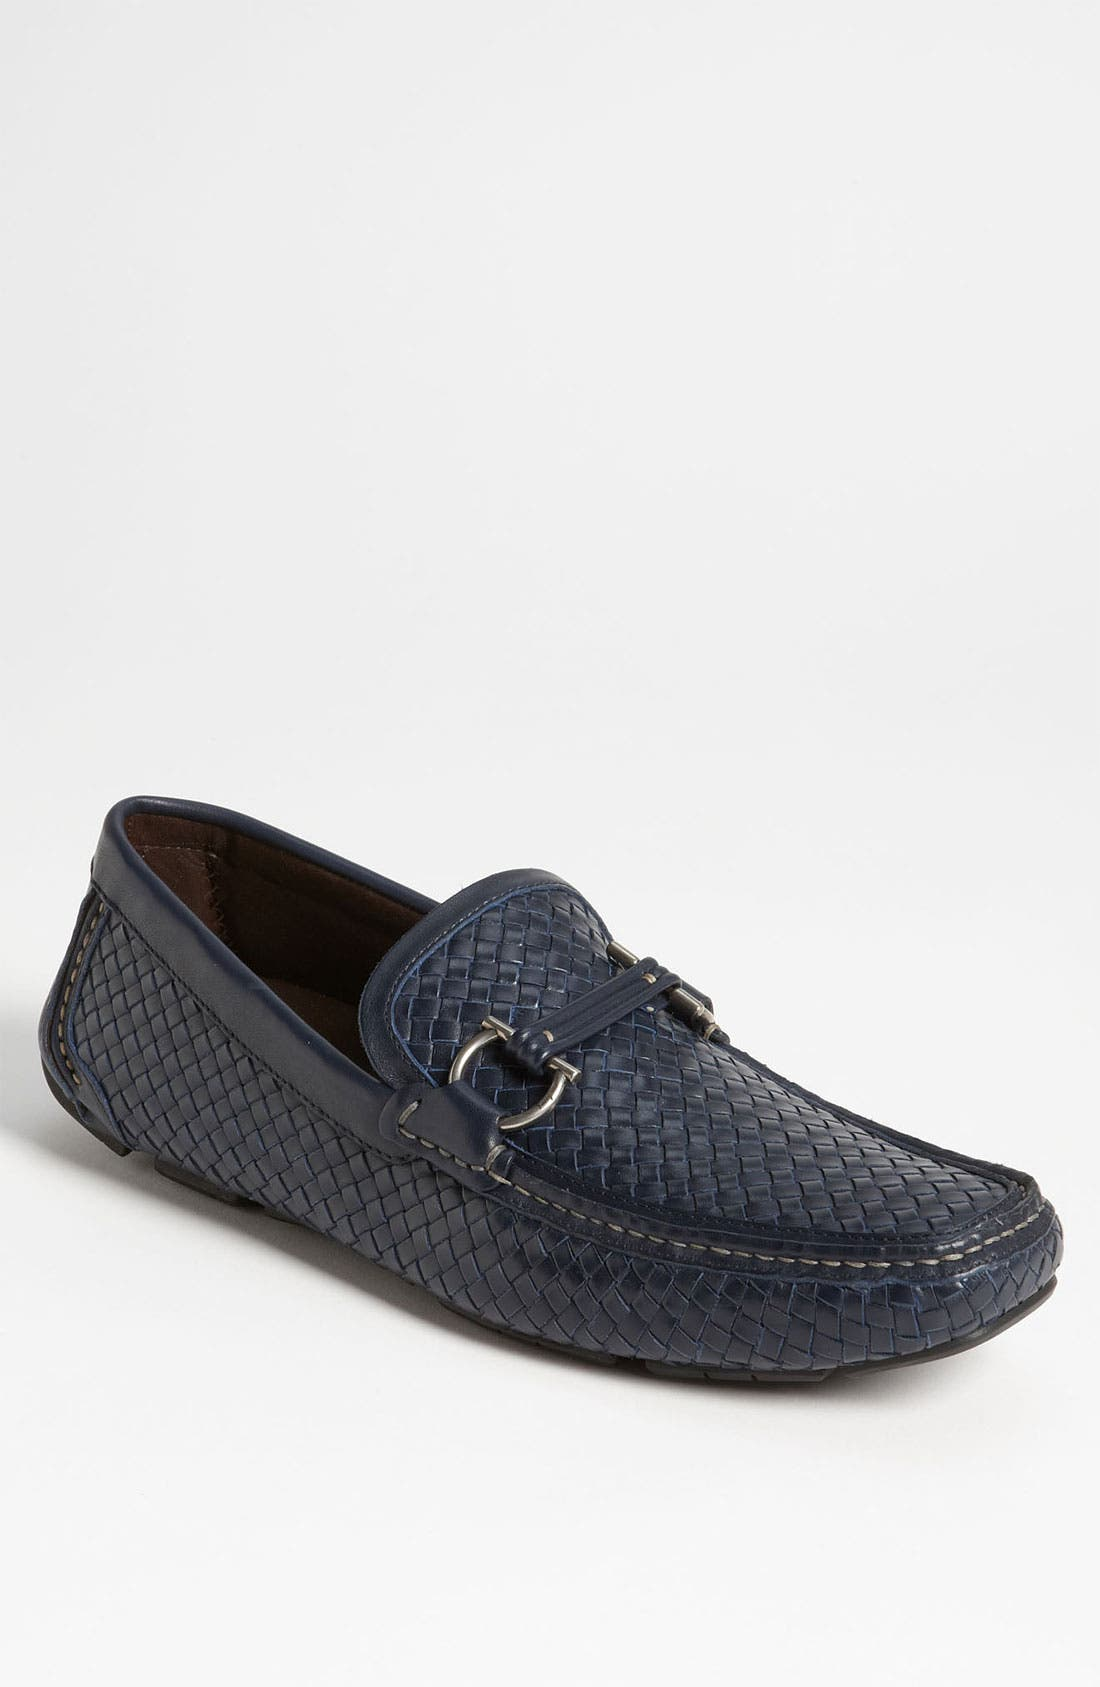 Main Image - Salvatore Ferragamo 'Barbados' Loafer